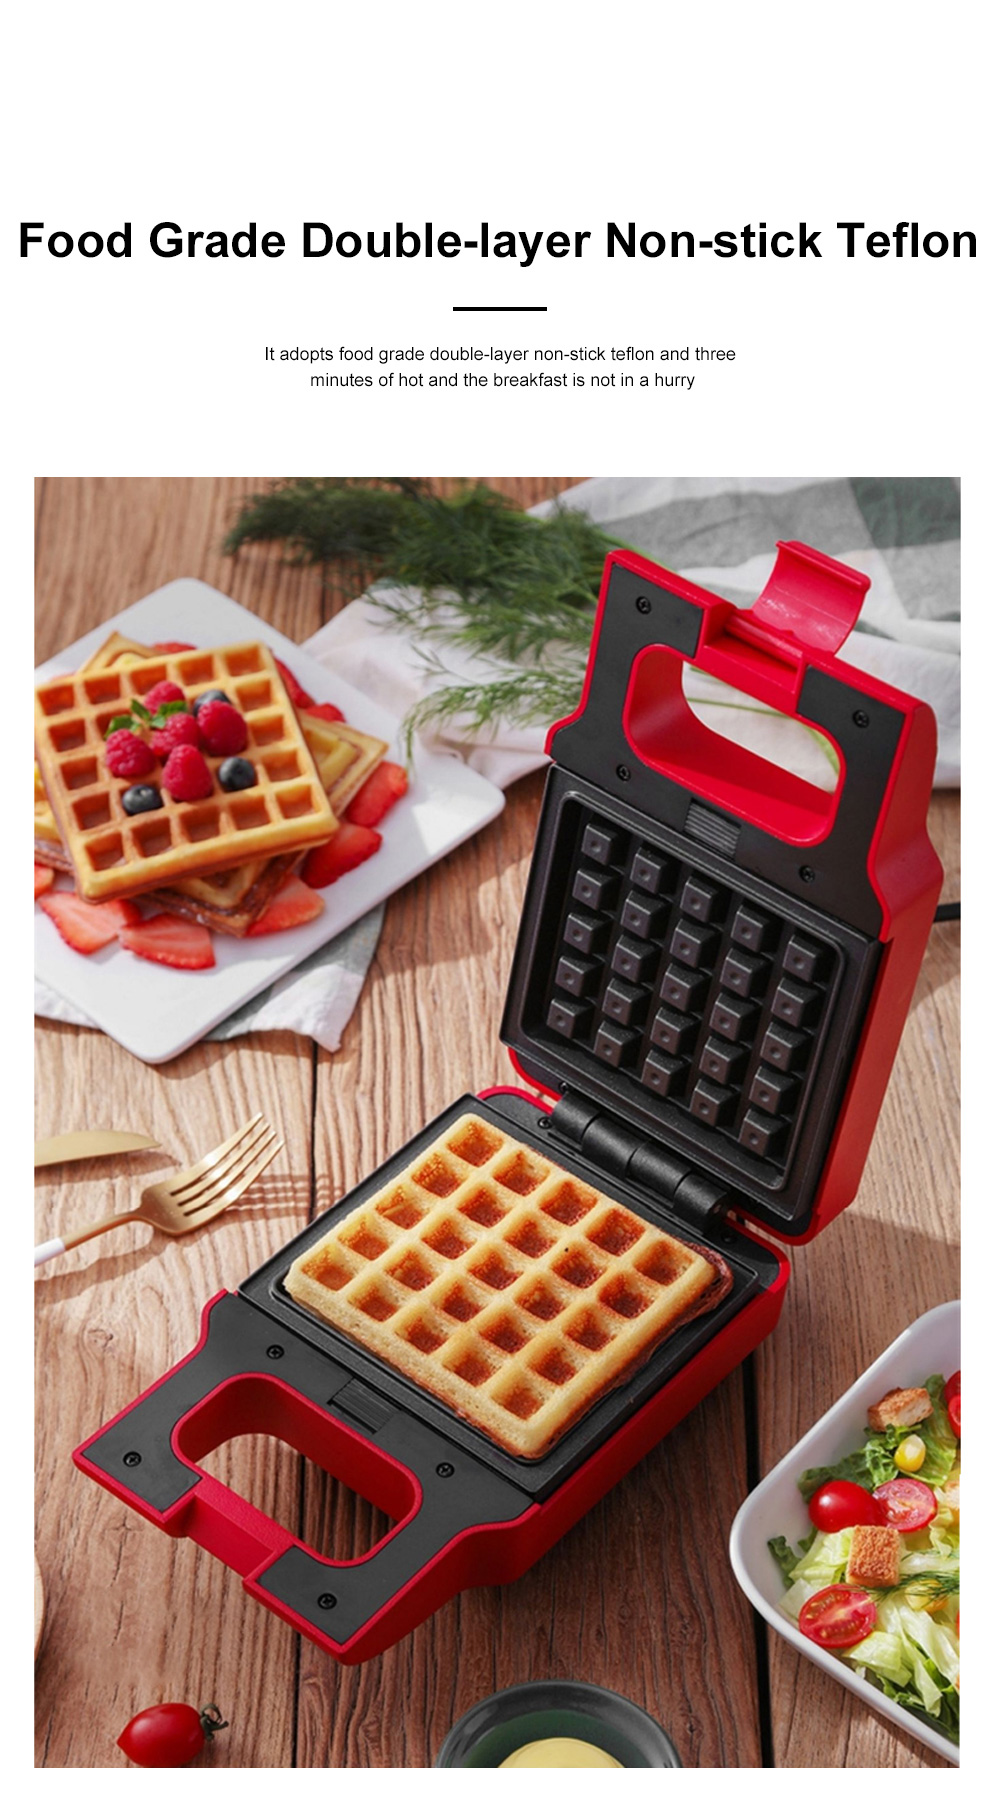 Kitchen Multifunctional Three-minute Breakfast Machine Sandwich Maker Waffle For Making Toast Bread Cookies Muffins Price 5